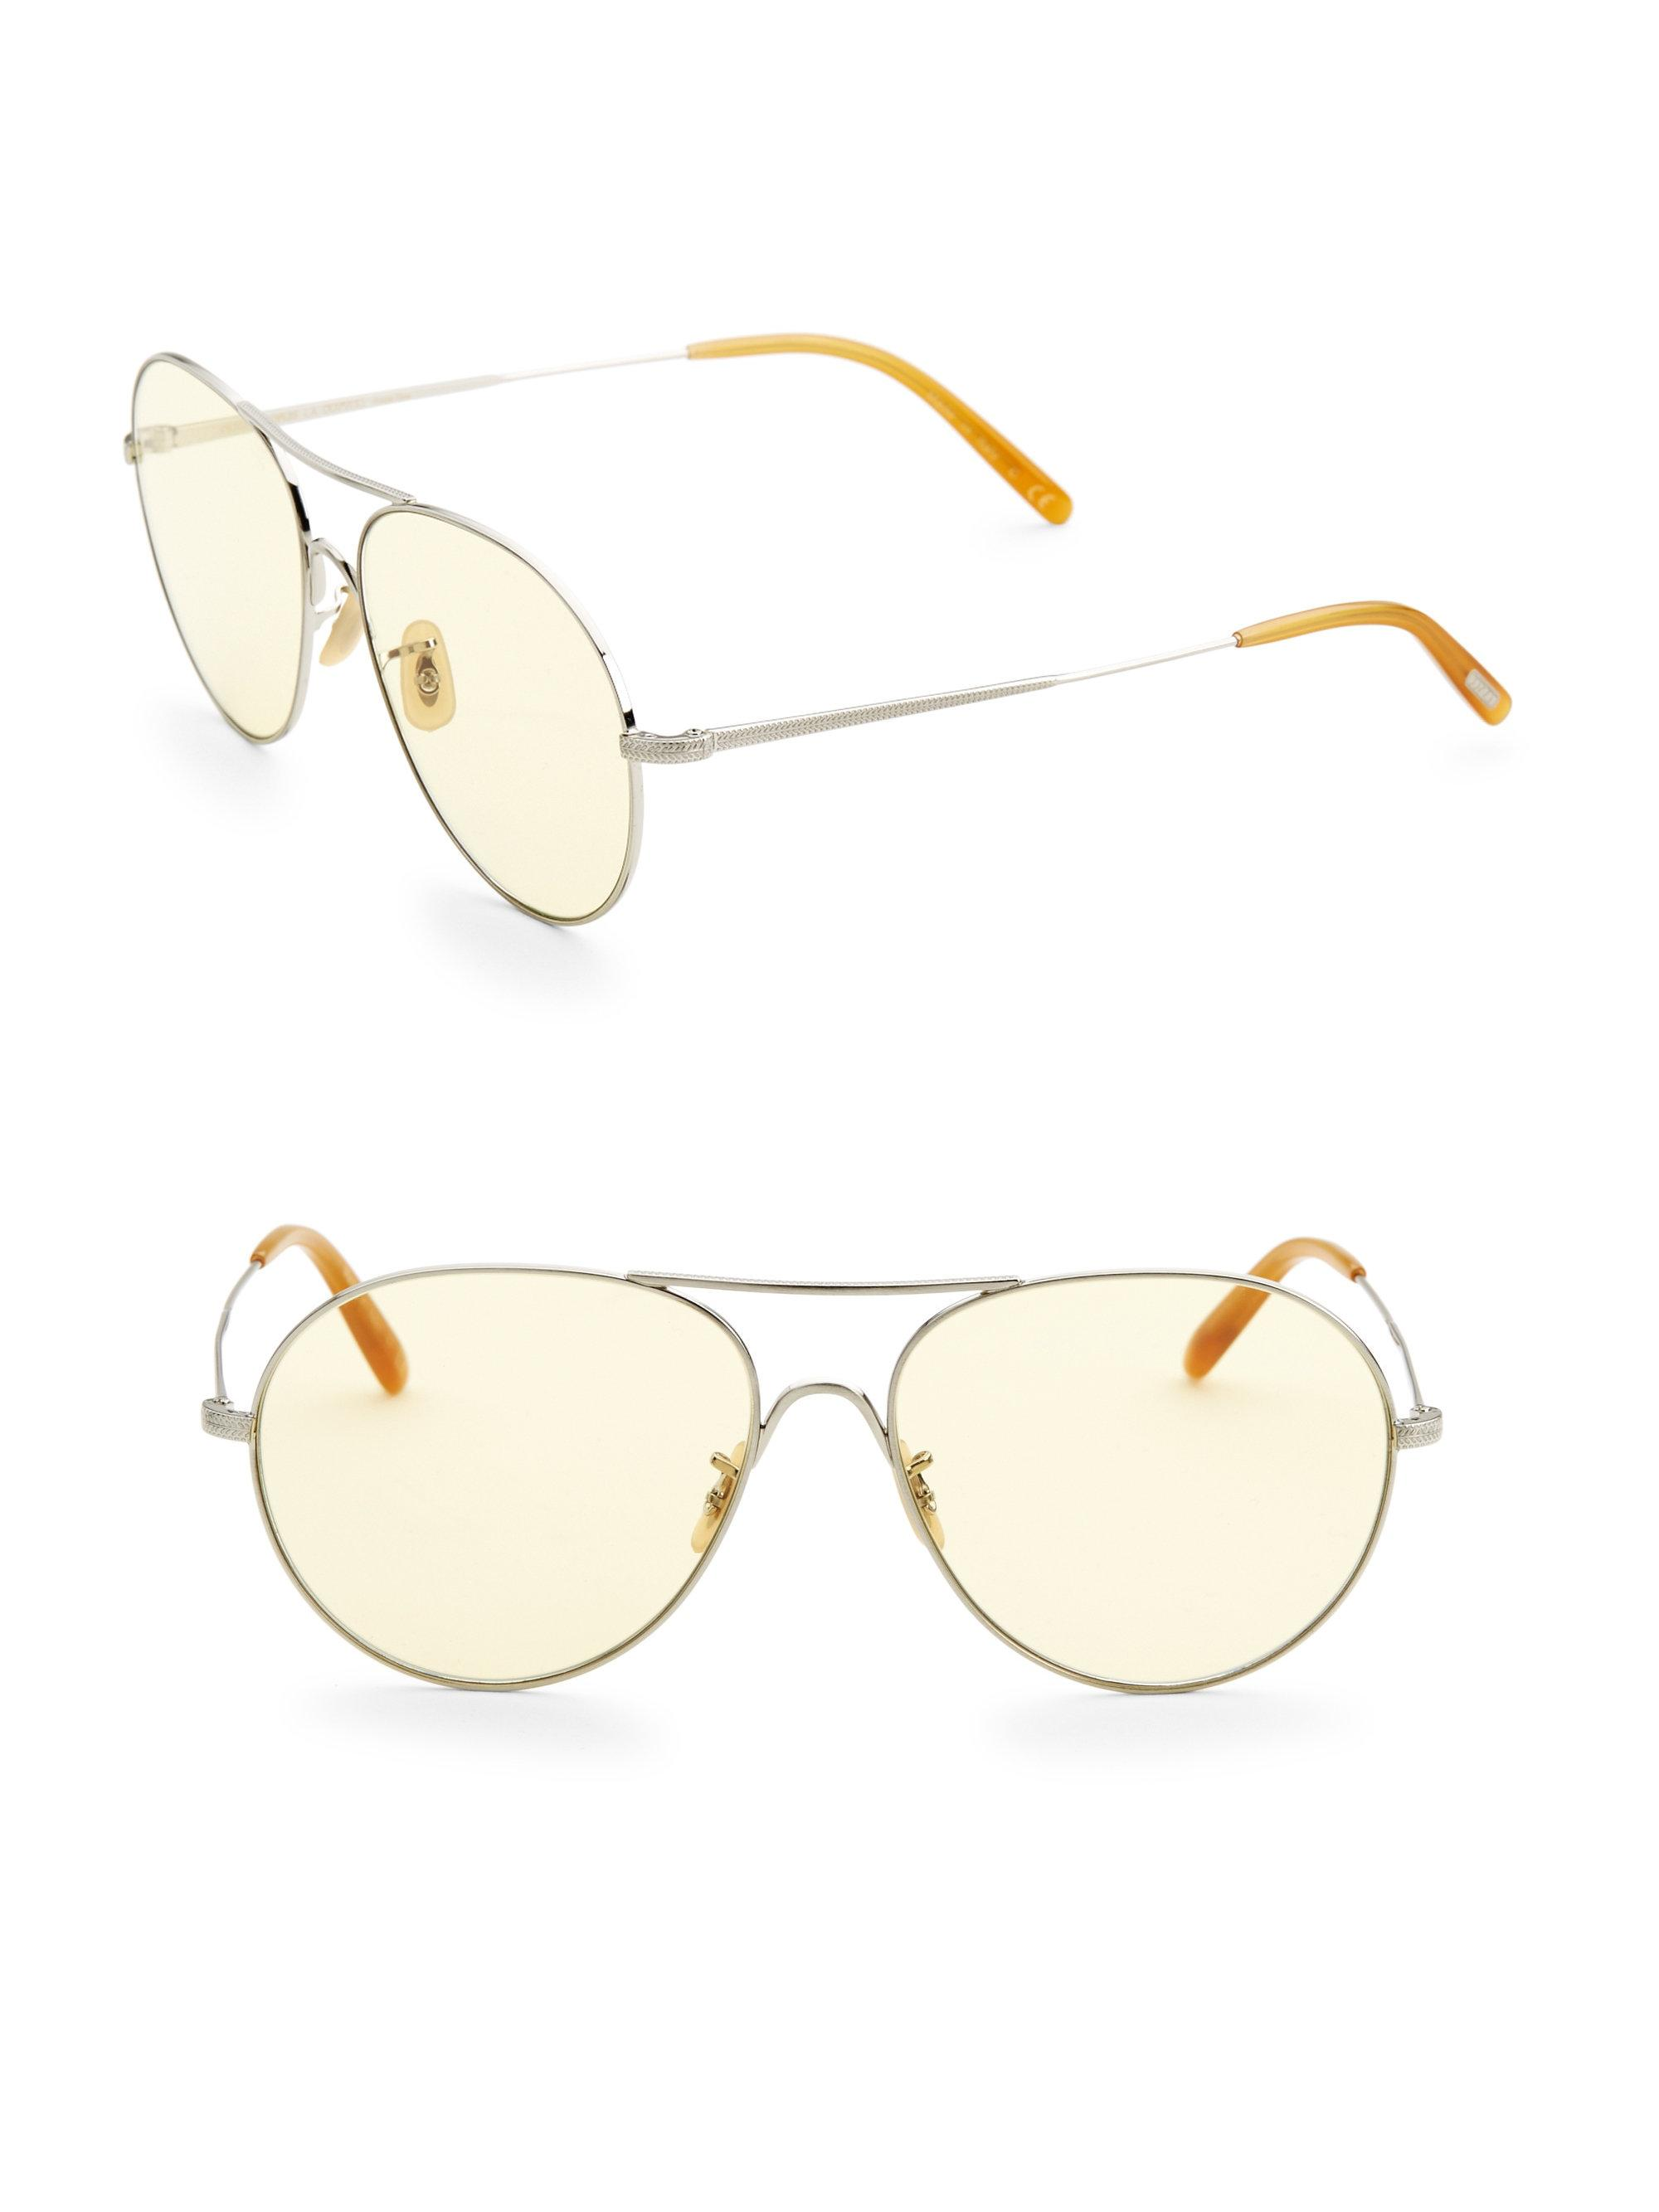 25a063676c Oliver Peoples 58mm Rockmore Pilot Sunglasses in Metallic for Men - Lyst